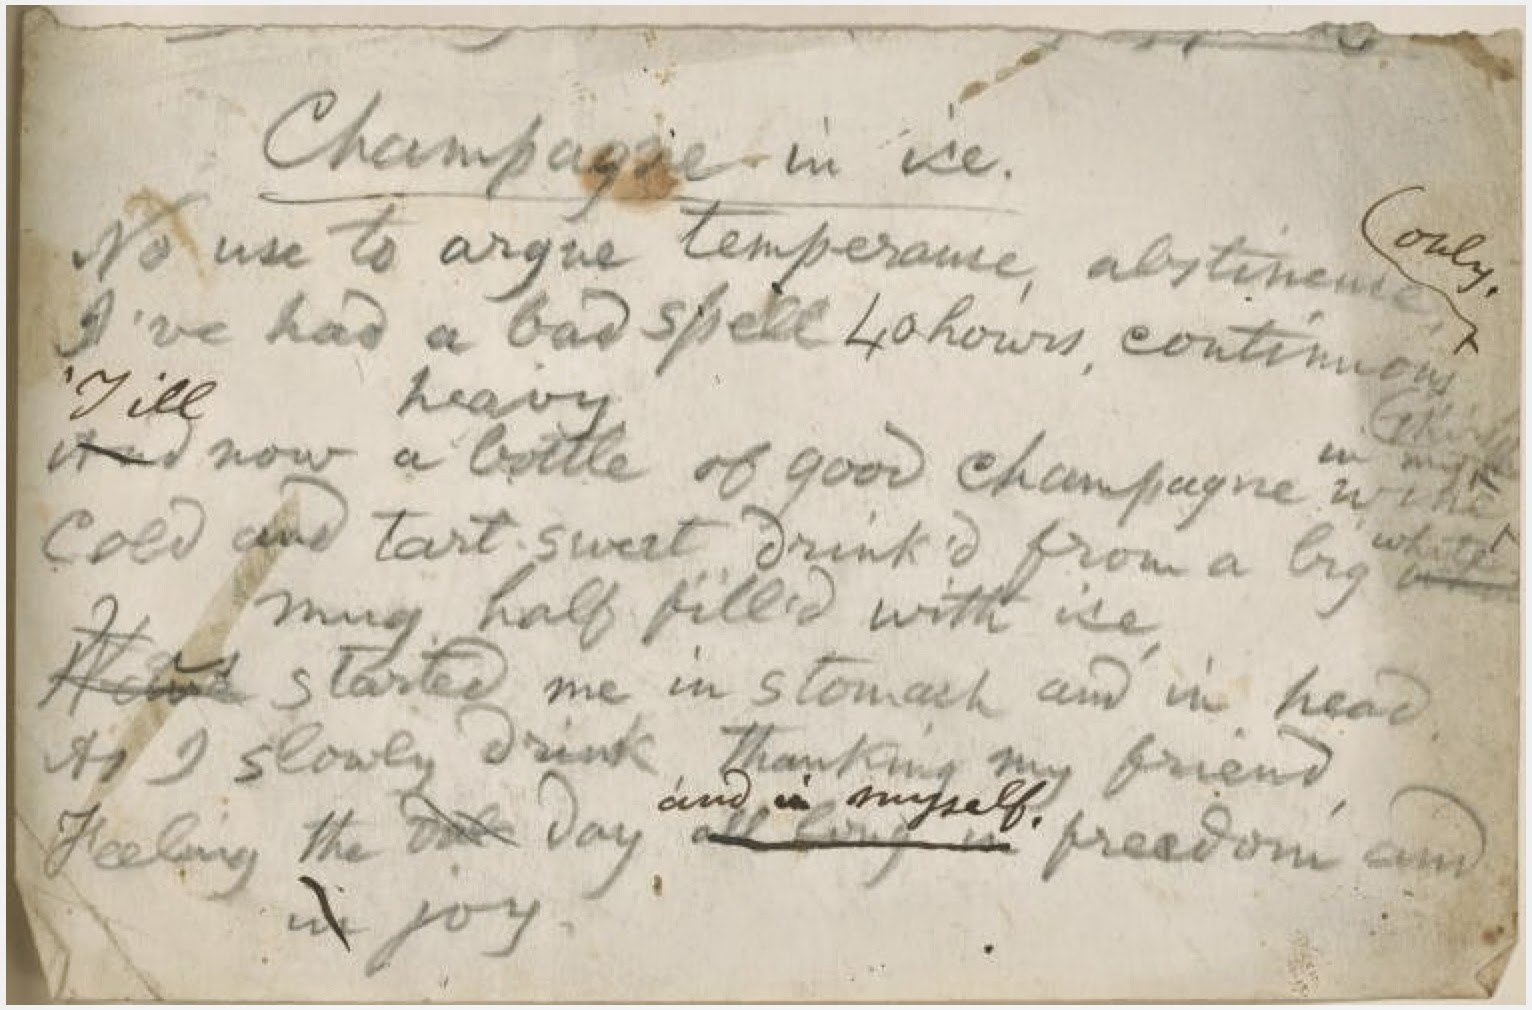 Whitman manuscript from the New York Public Library